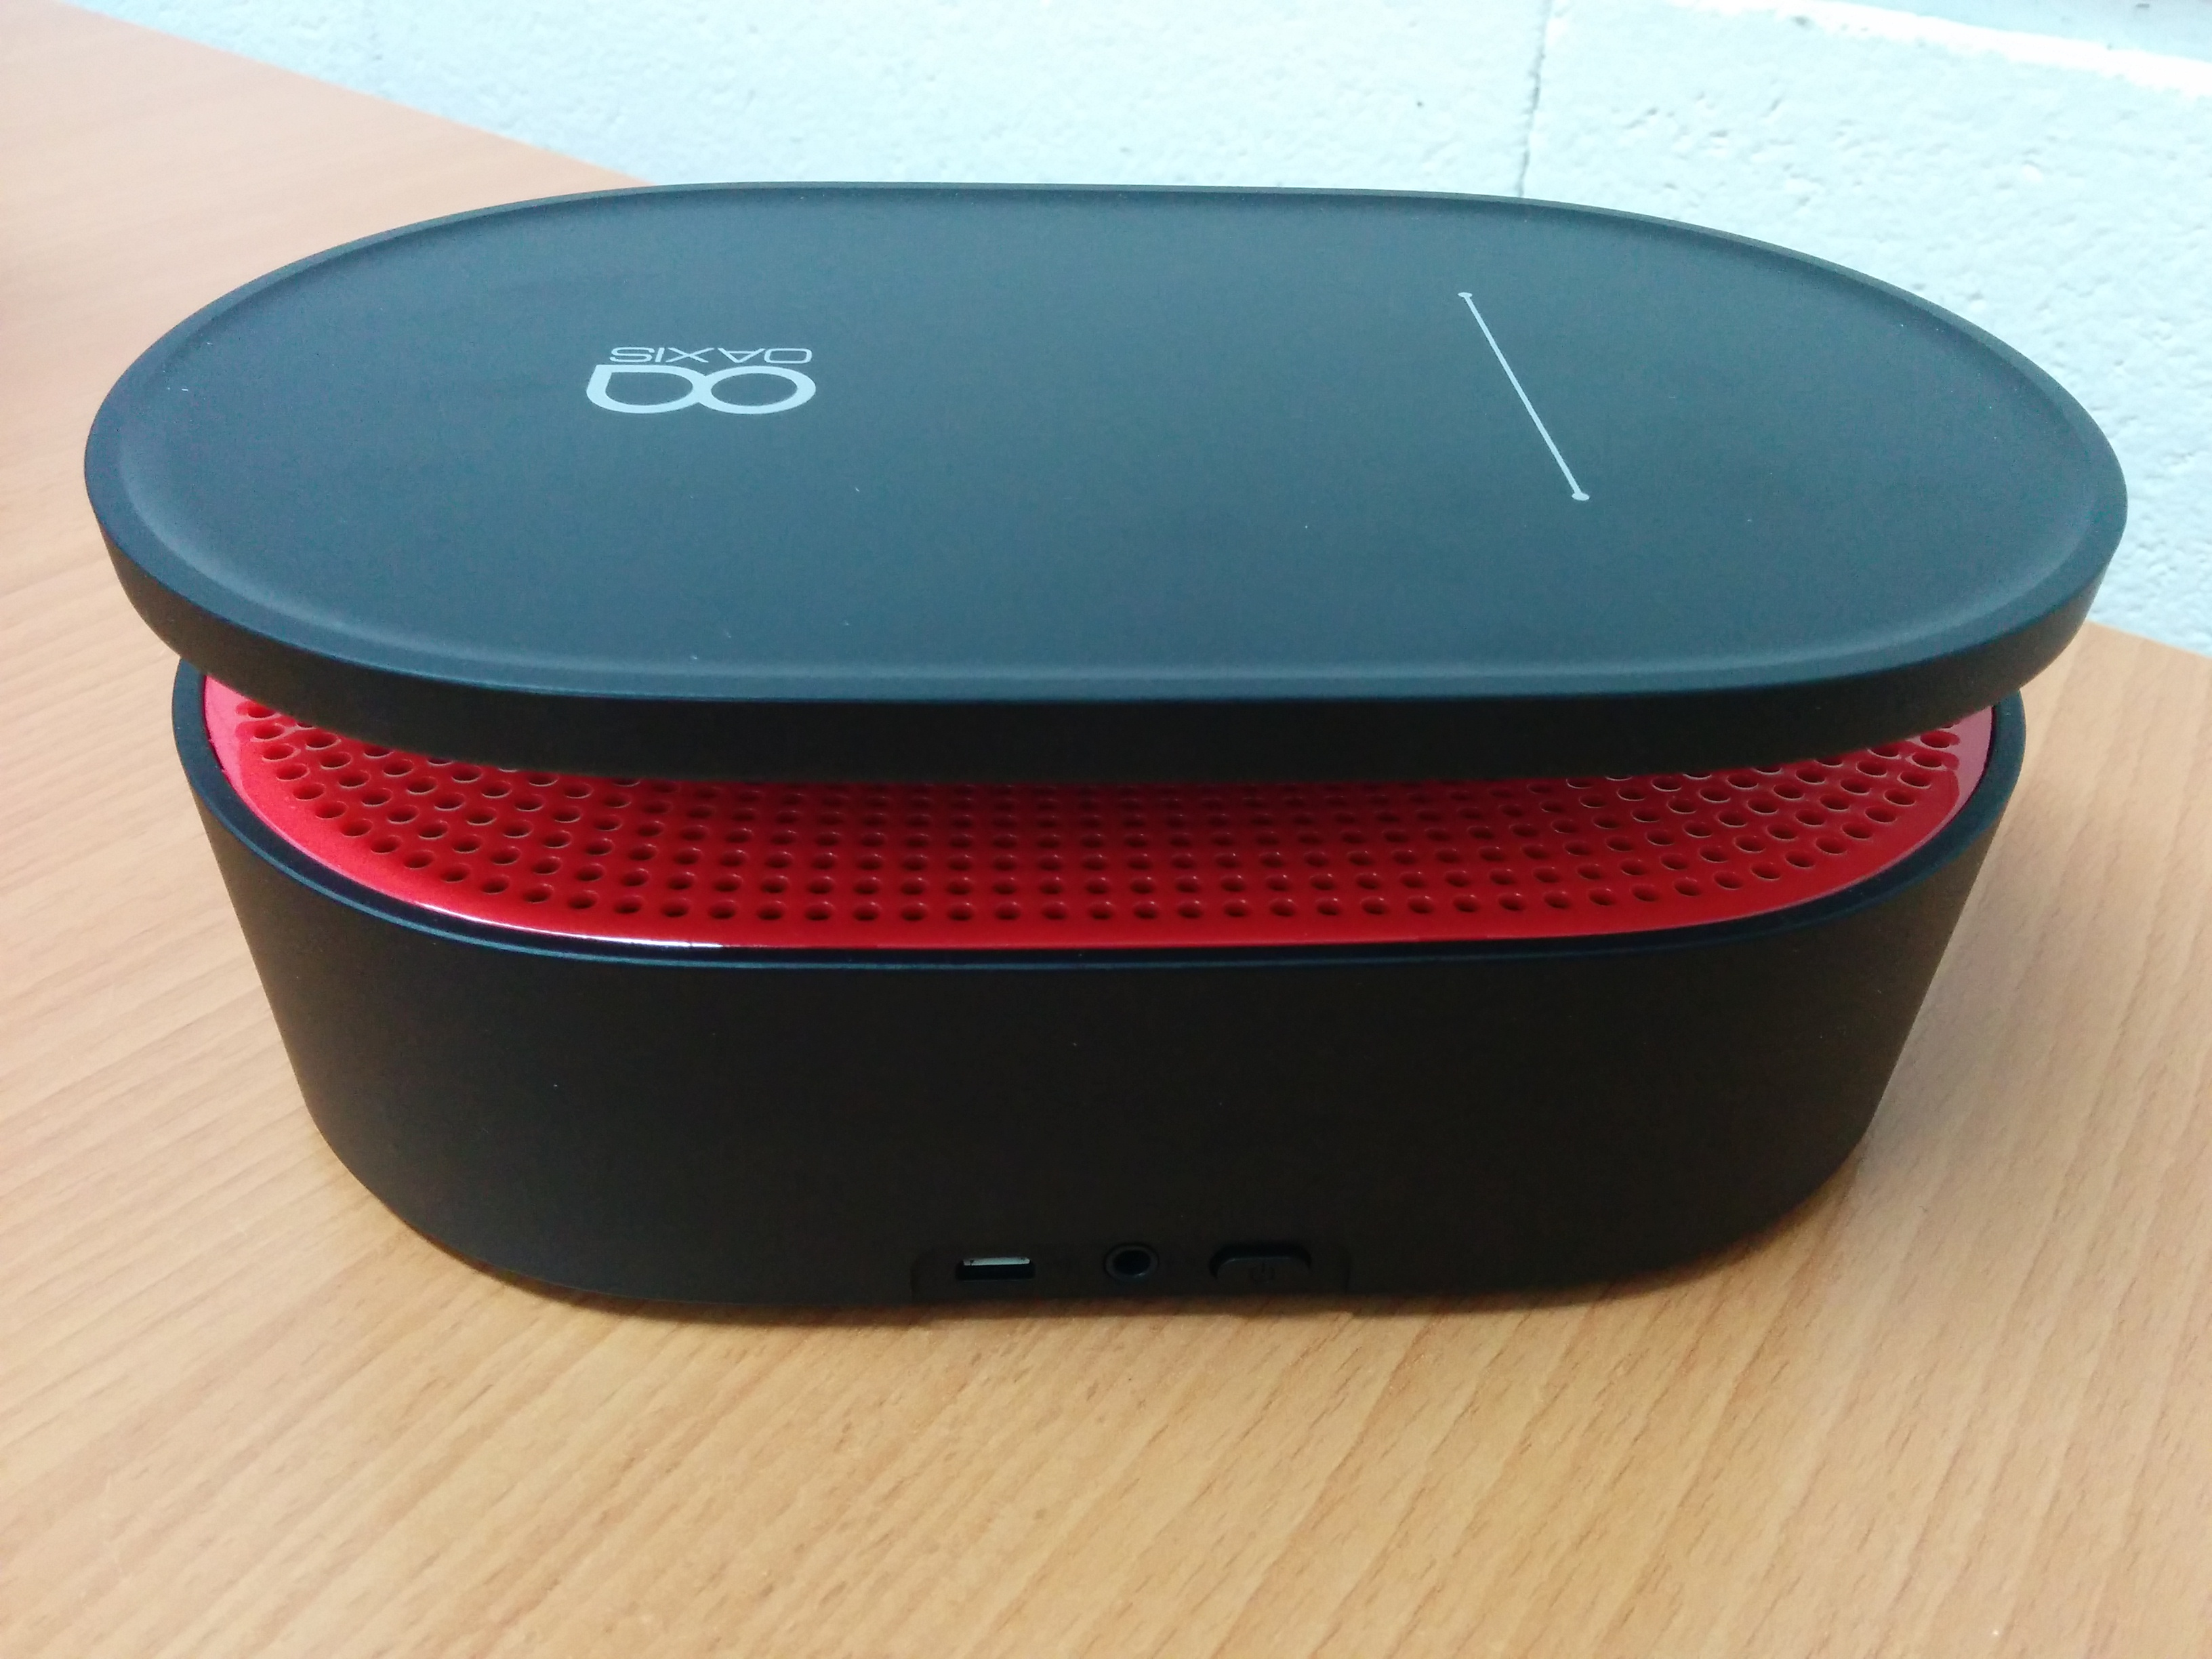 Oaxis Bento GD2507 Induction Speaker Review 3